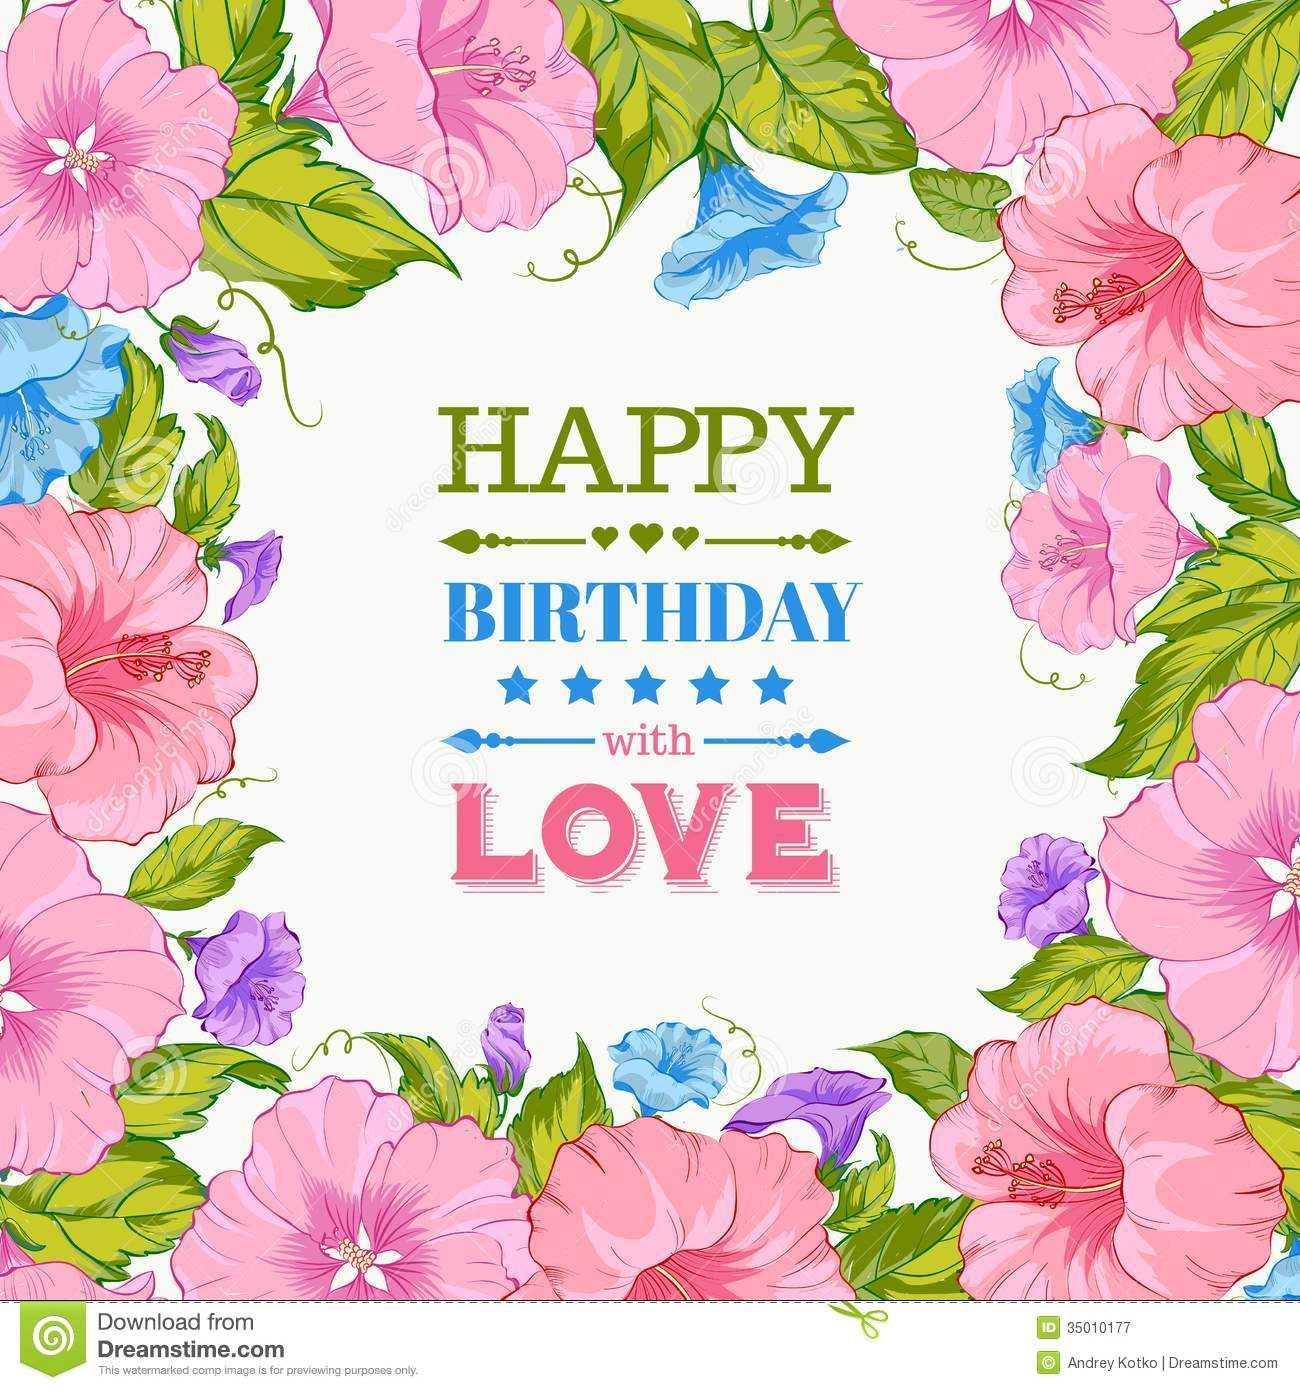 Happy Birthday Card.  Birthday Greetings Download Free